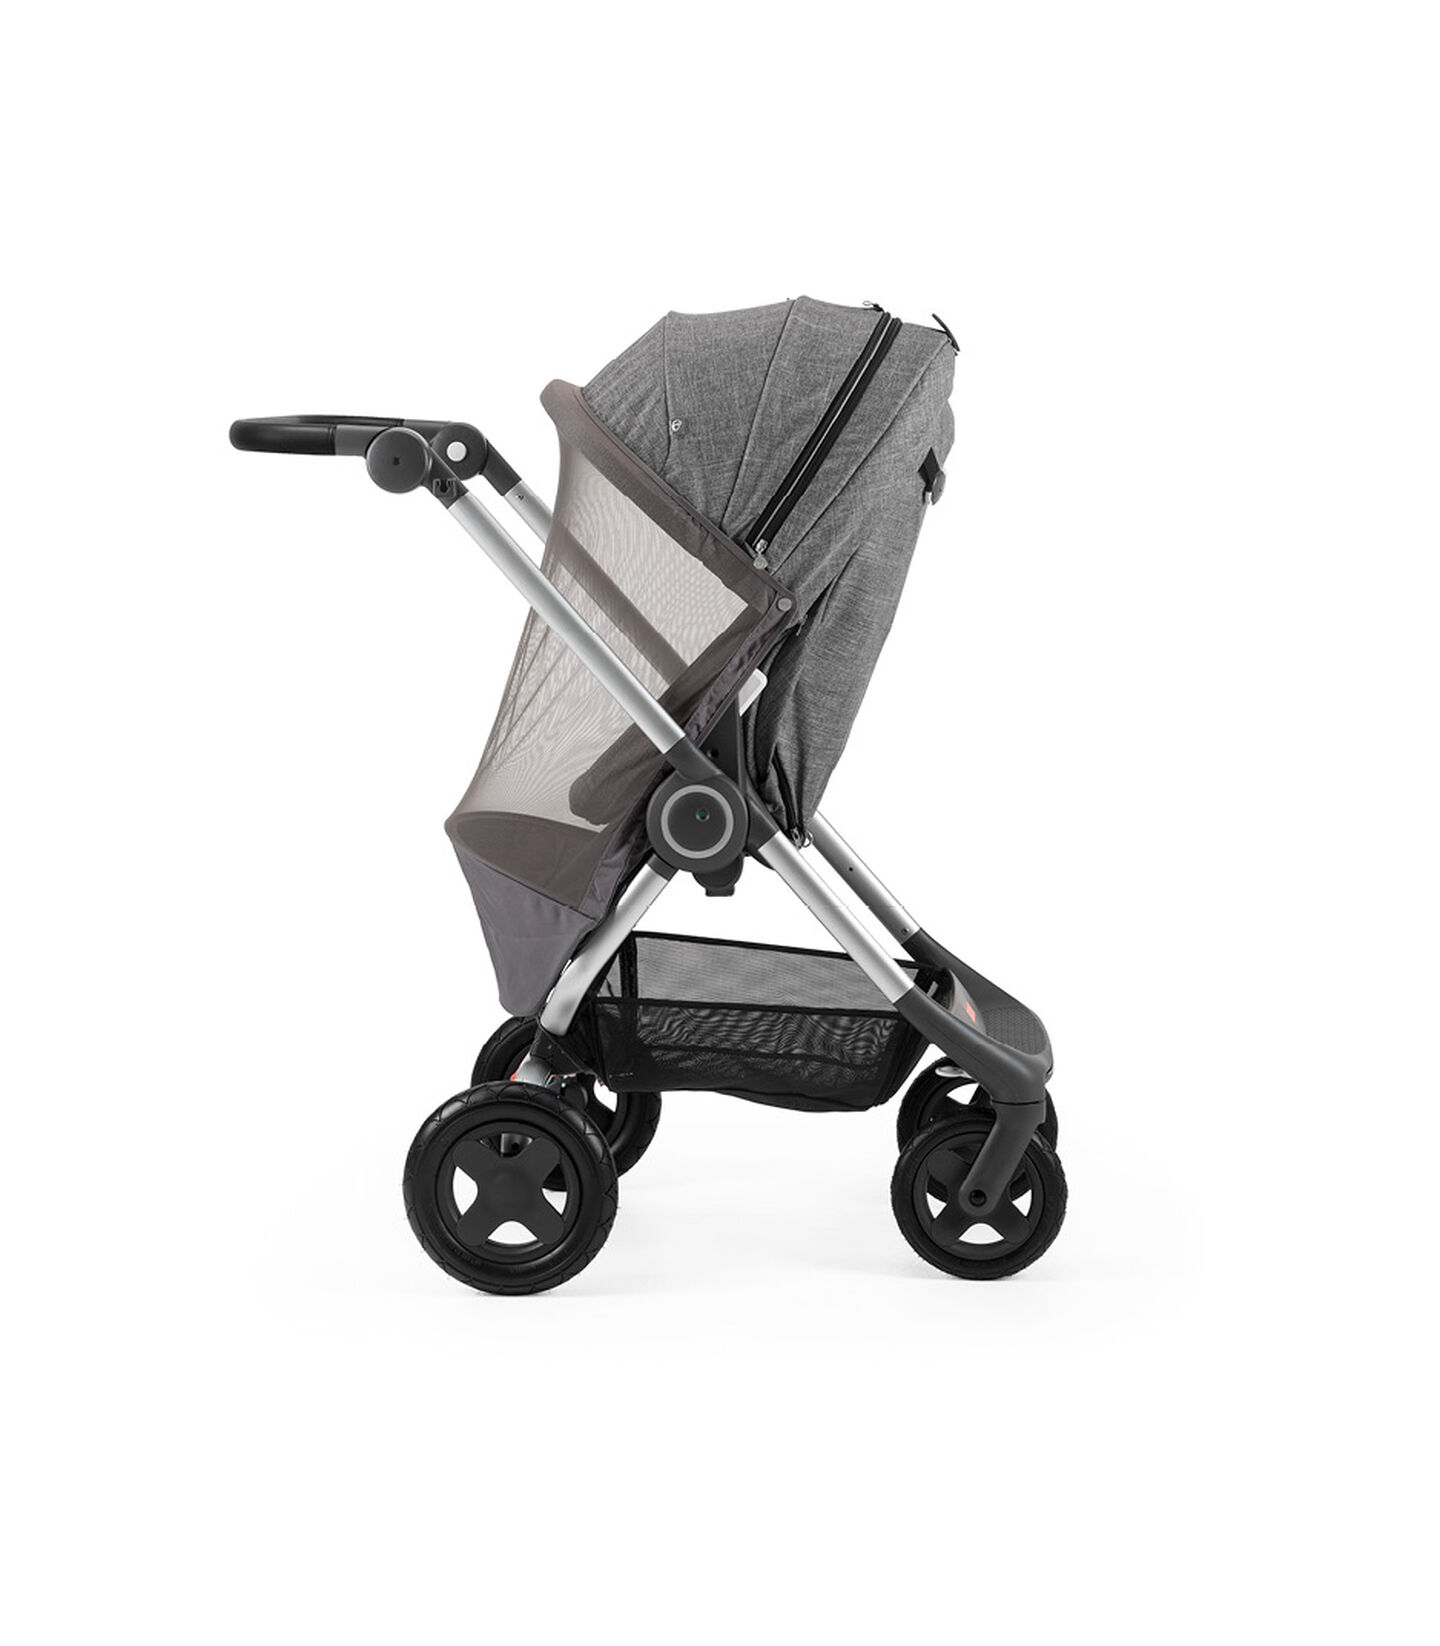 Stokke® Scoot™ Myggnett, , mainview view 2